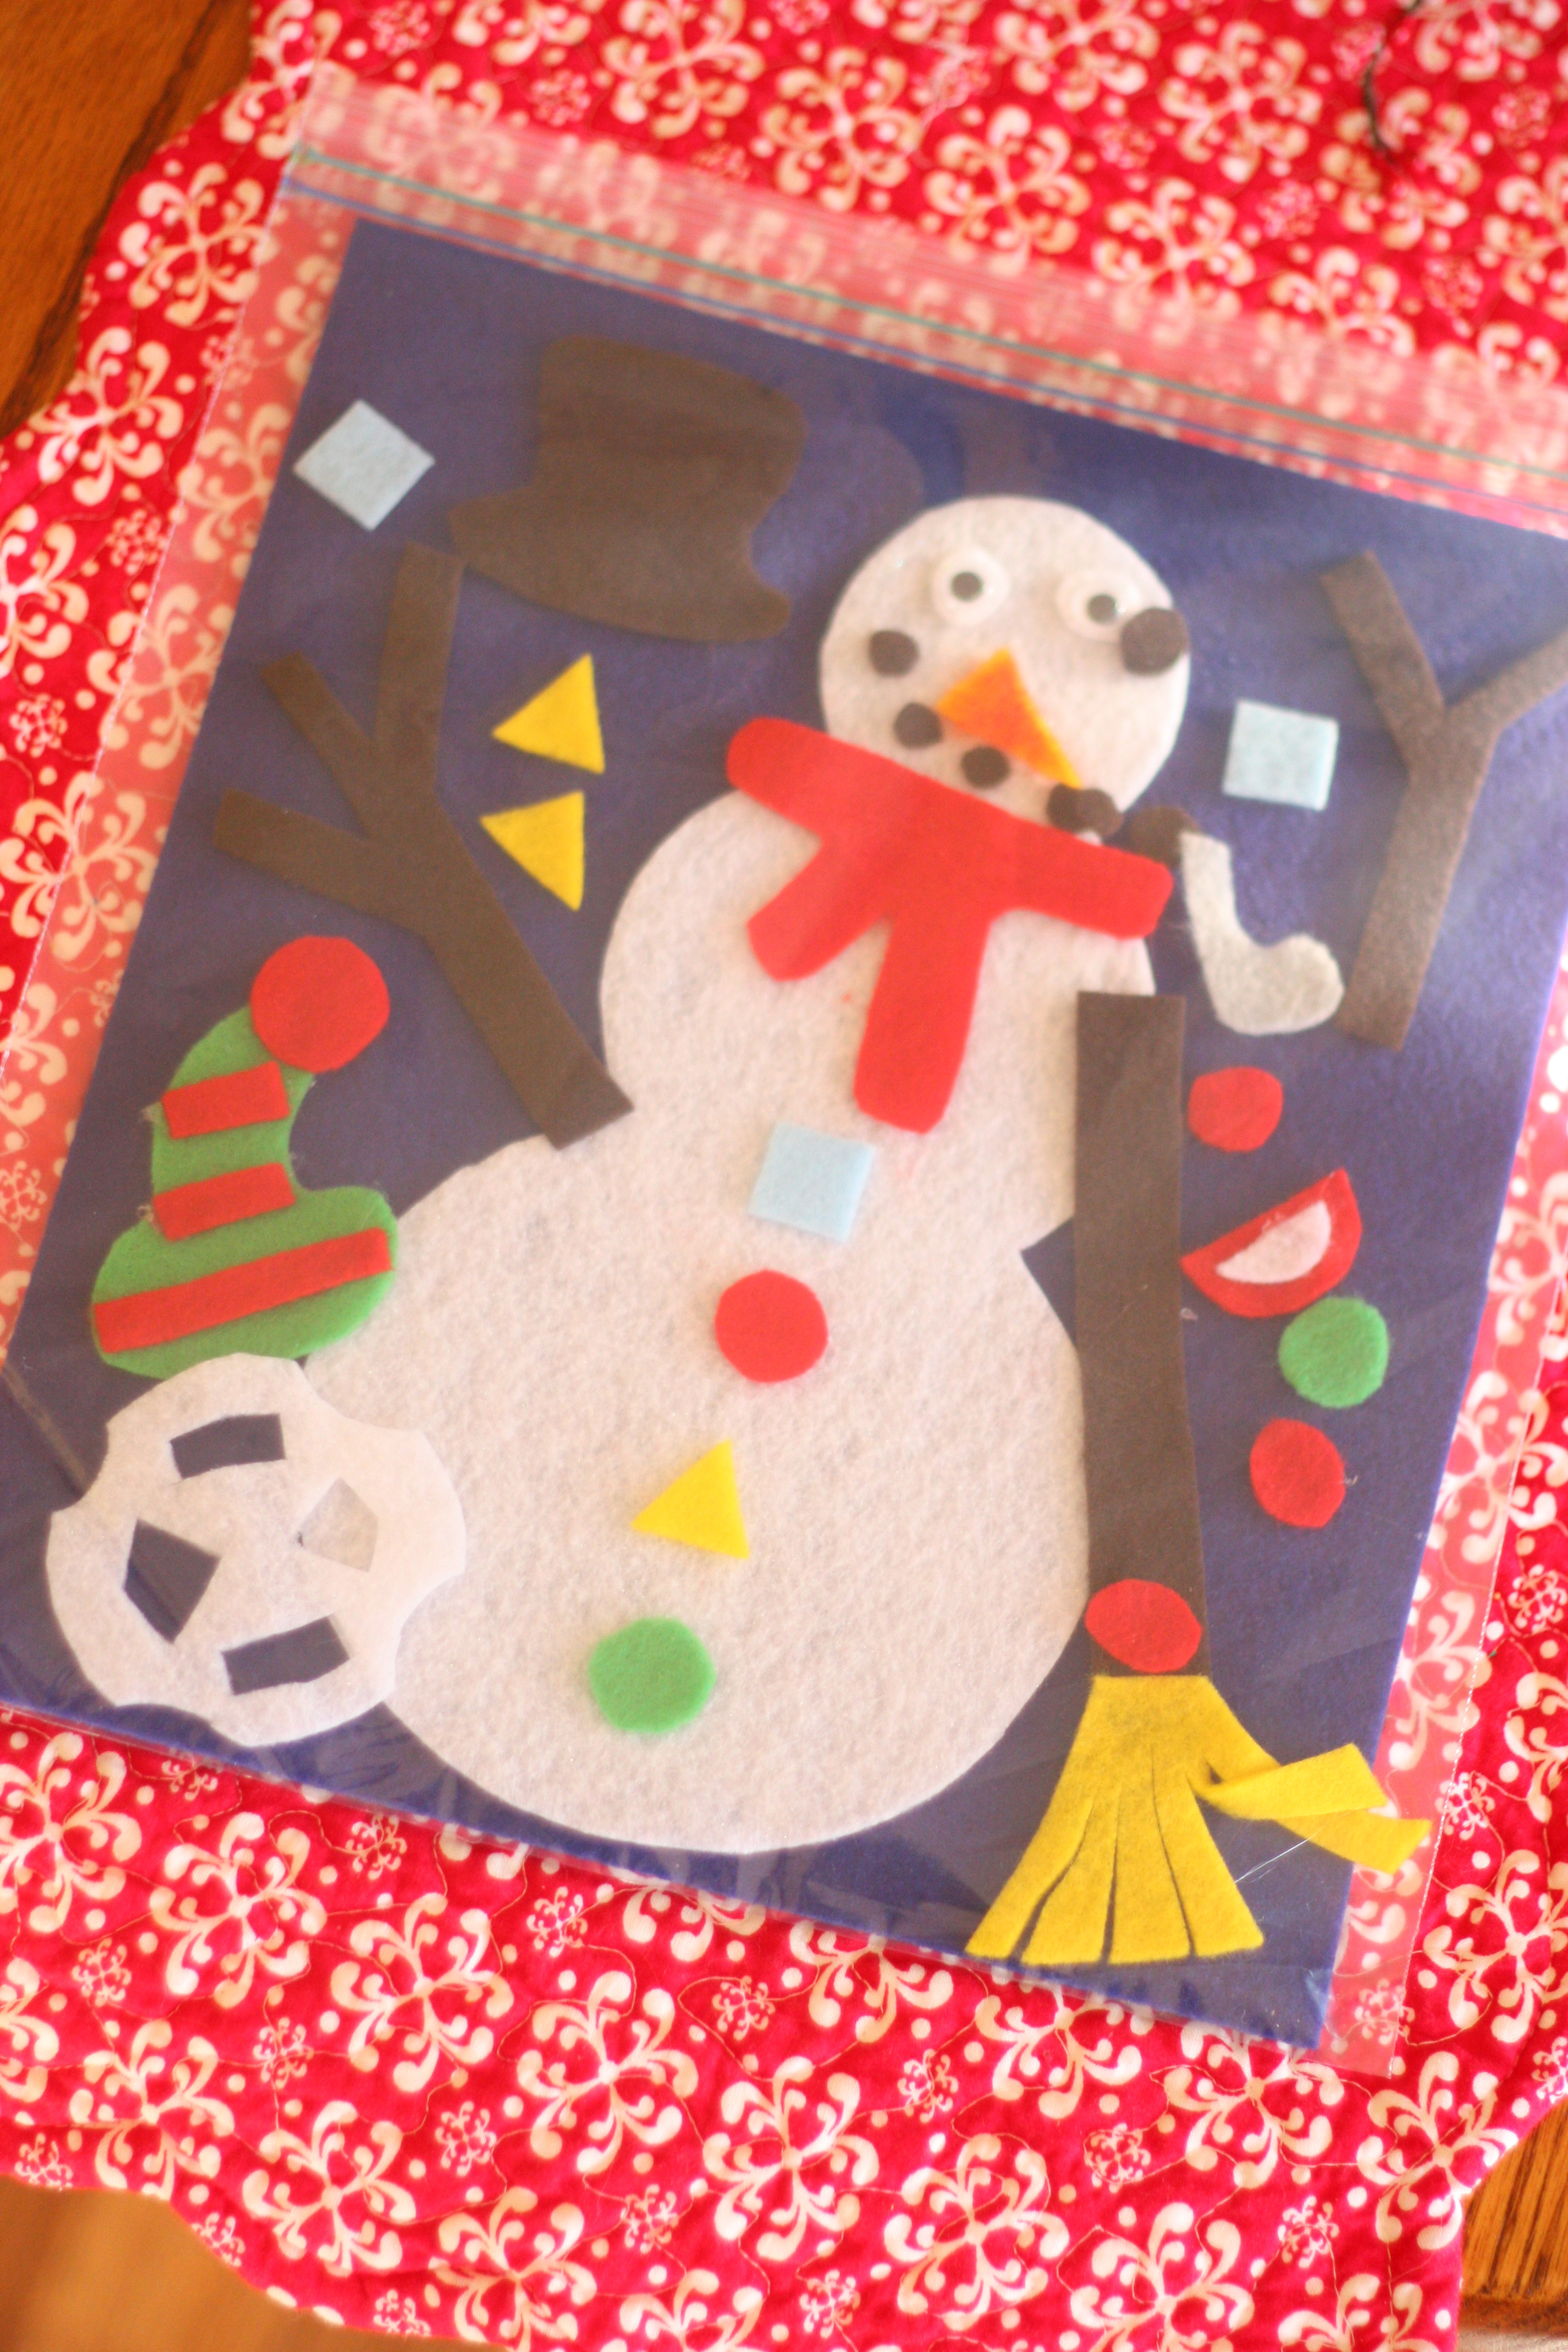 build your own snowman in a bag i can teach my child